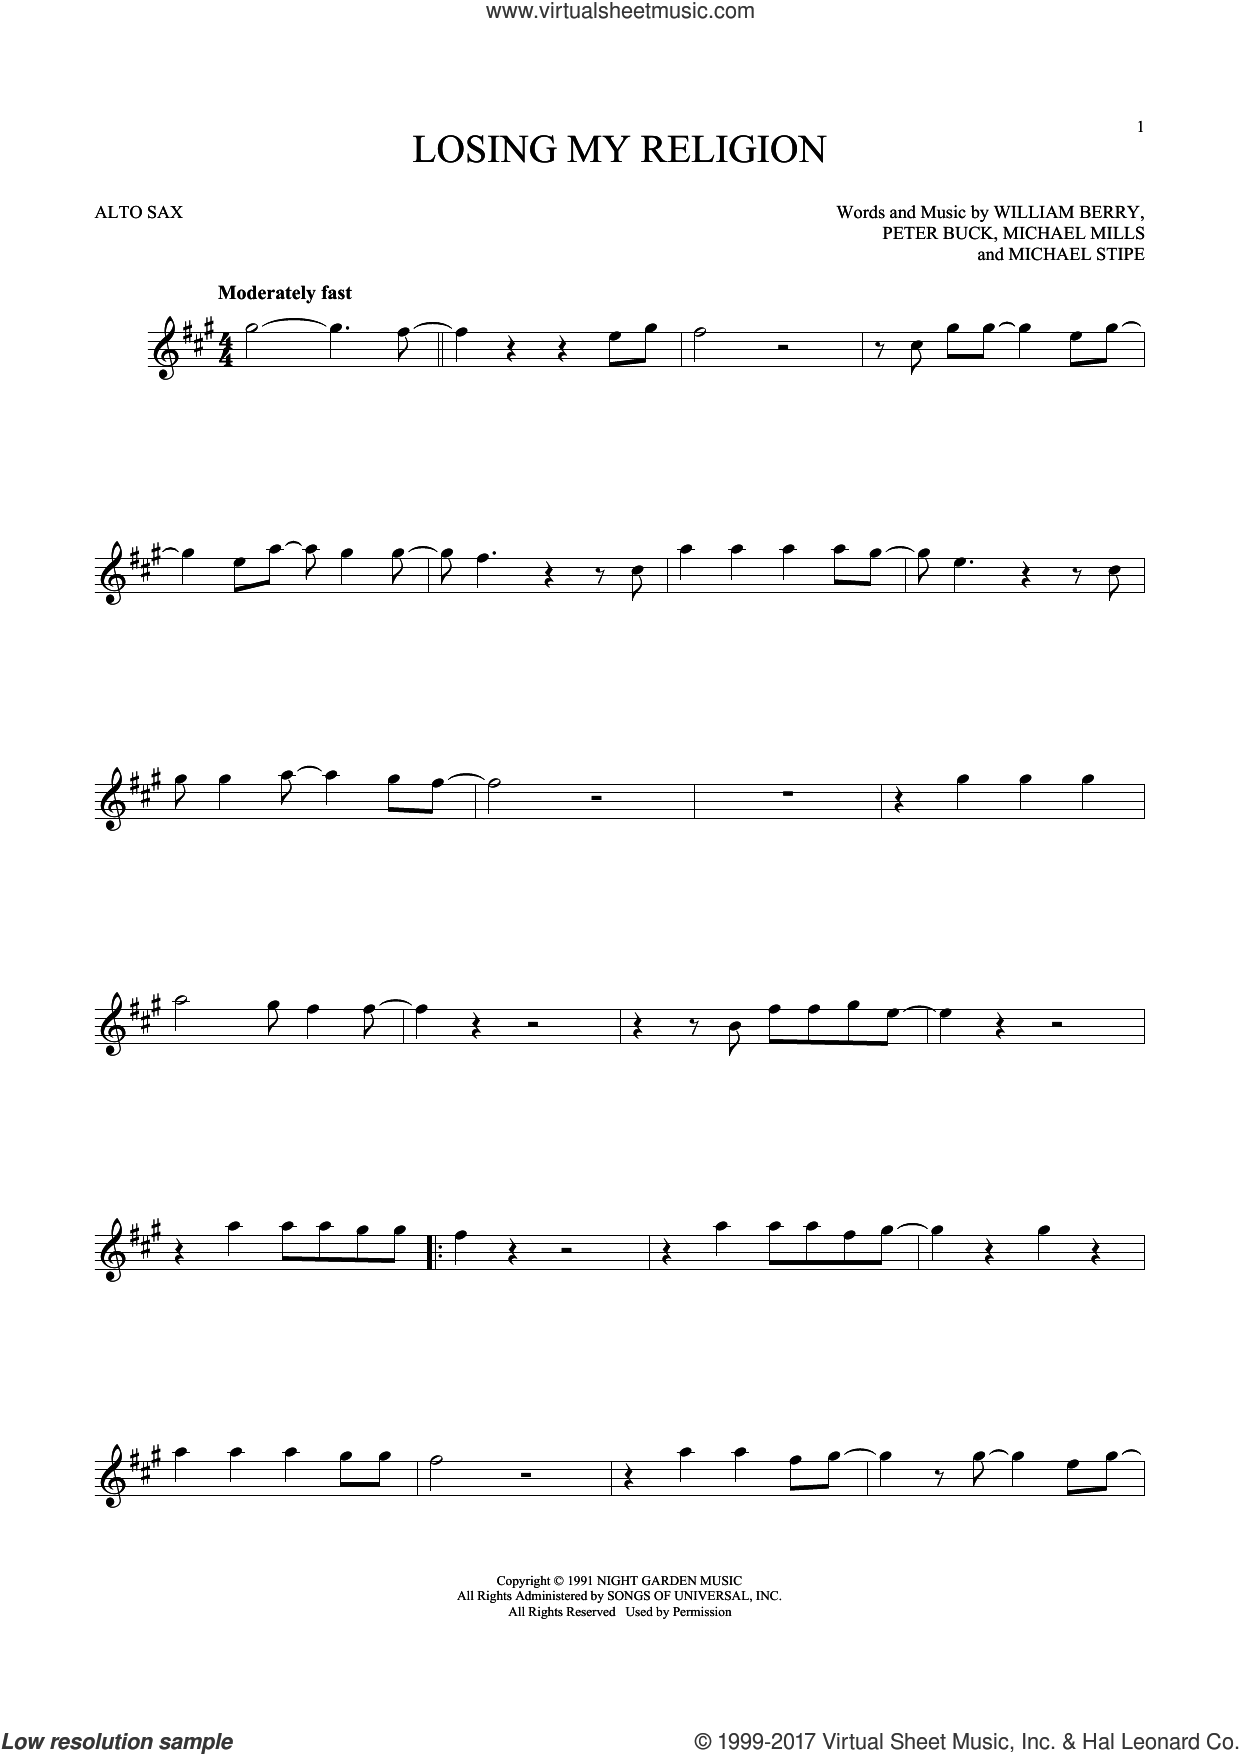 Rem Losing My Religion Sheet Music For Alto Saxophone Solo